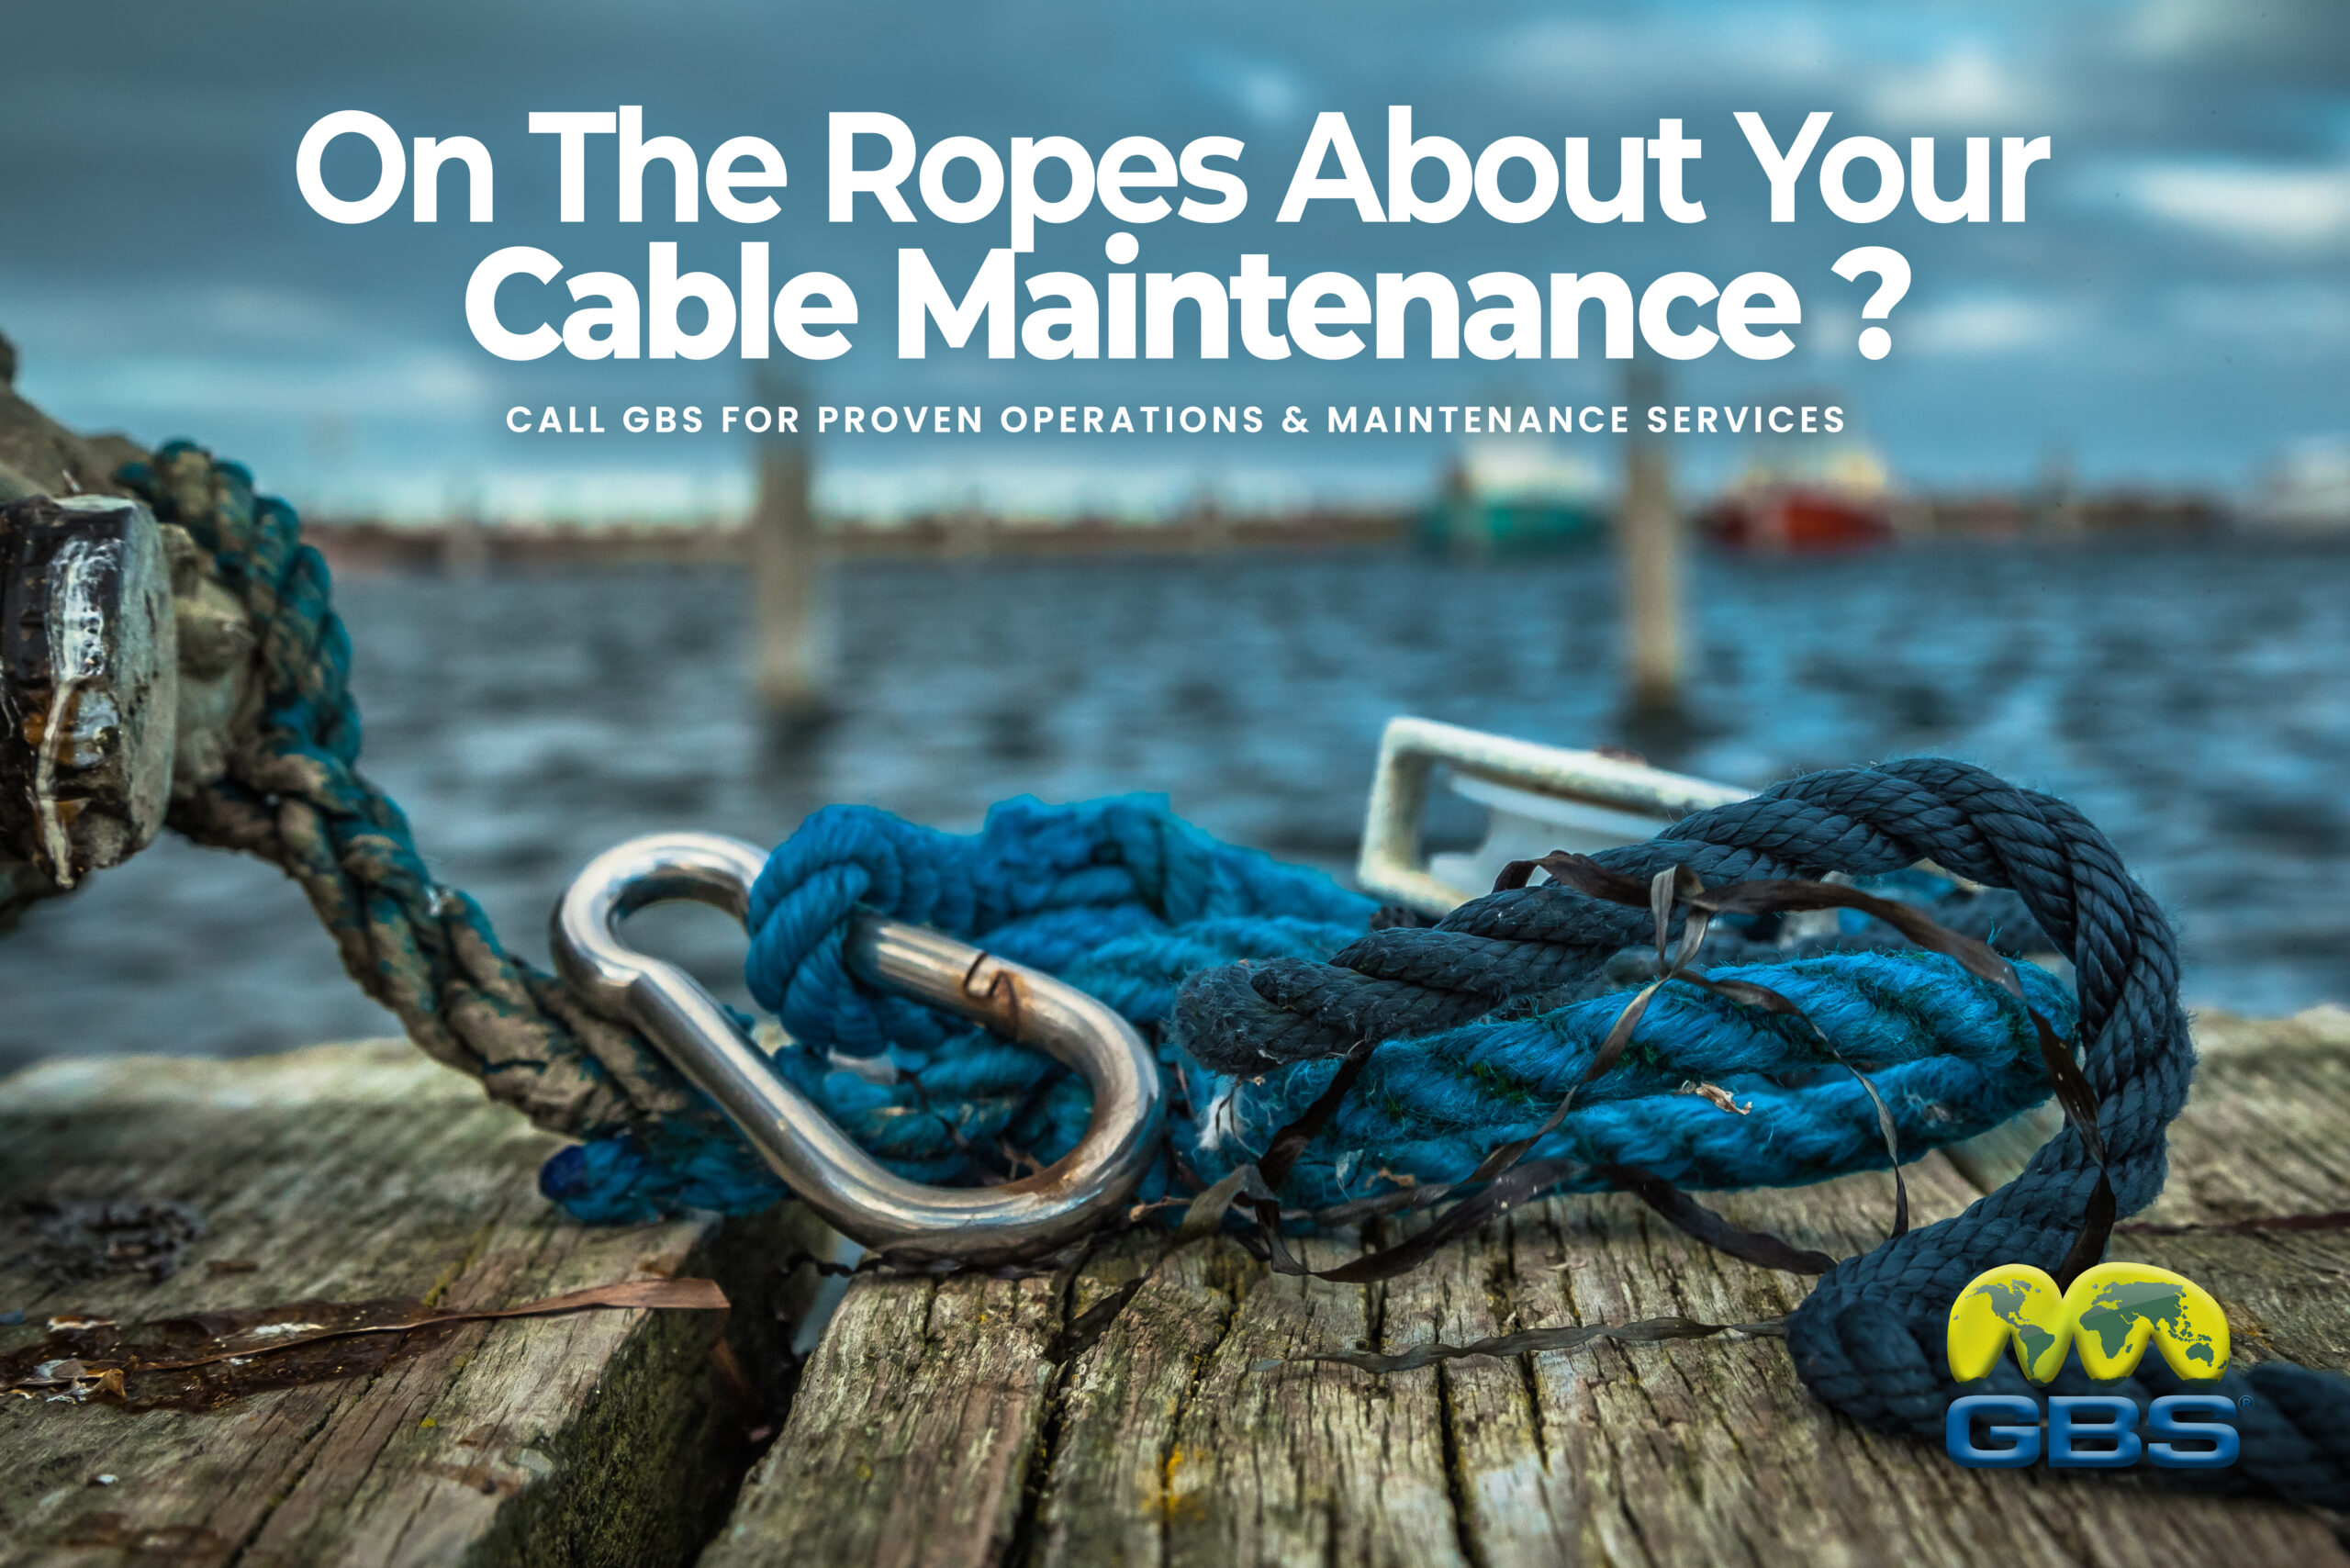 On the ropes about your cable maintenance services CALL GBS